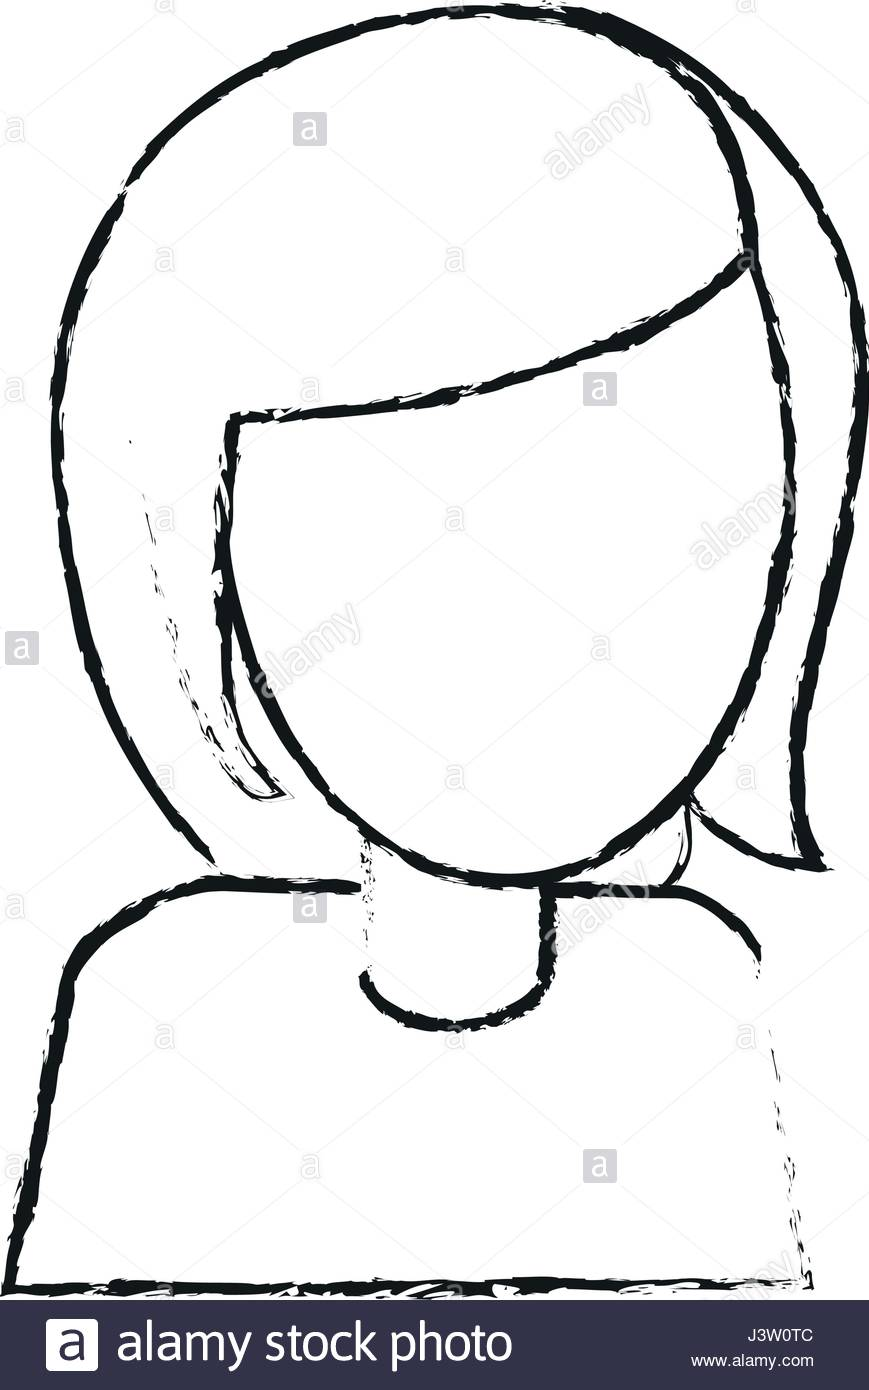 869x1390 Blurred Silhouette Image Cartoon Faceless Half Body Woman